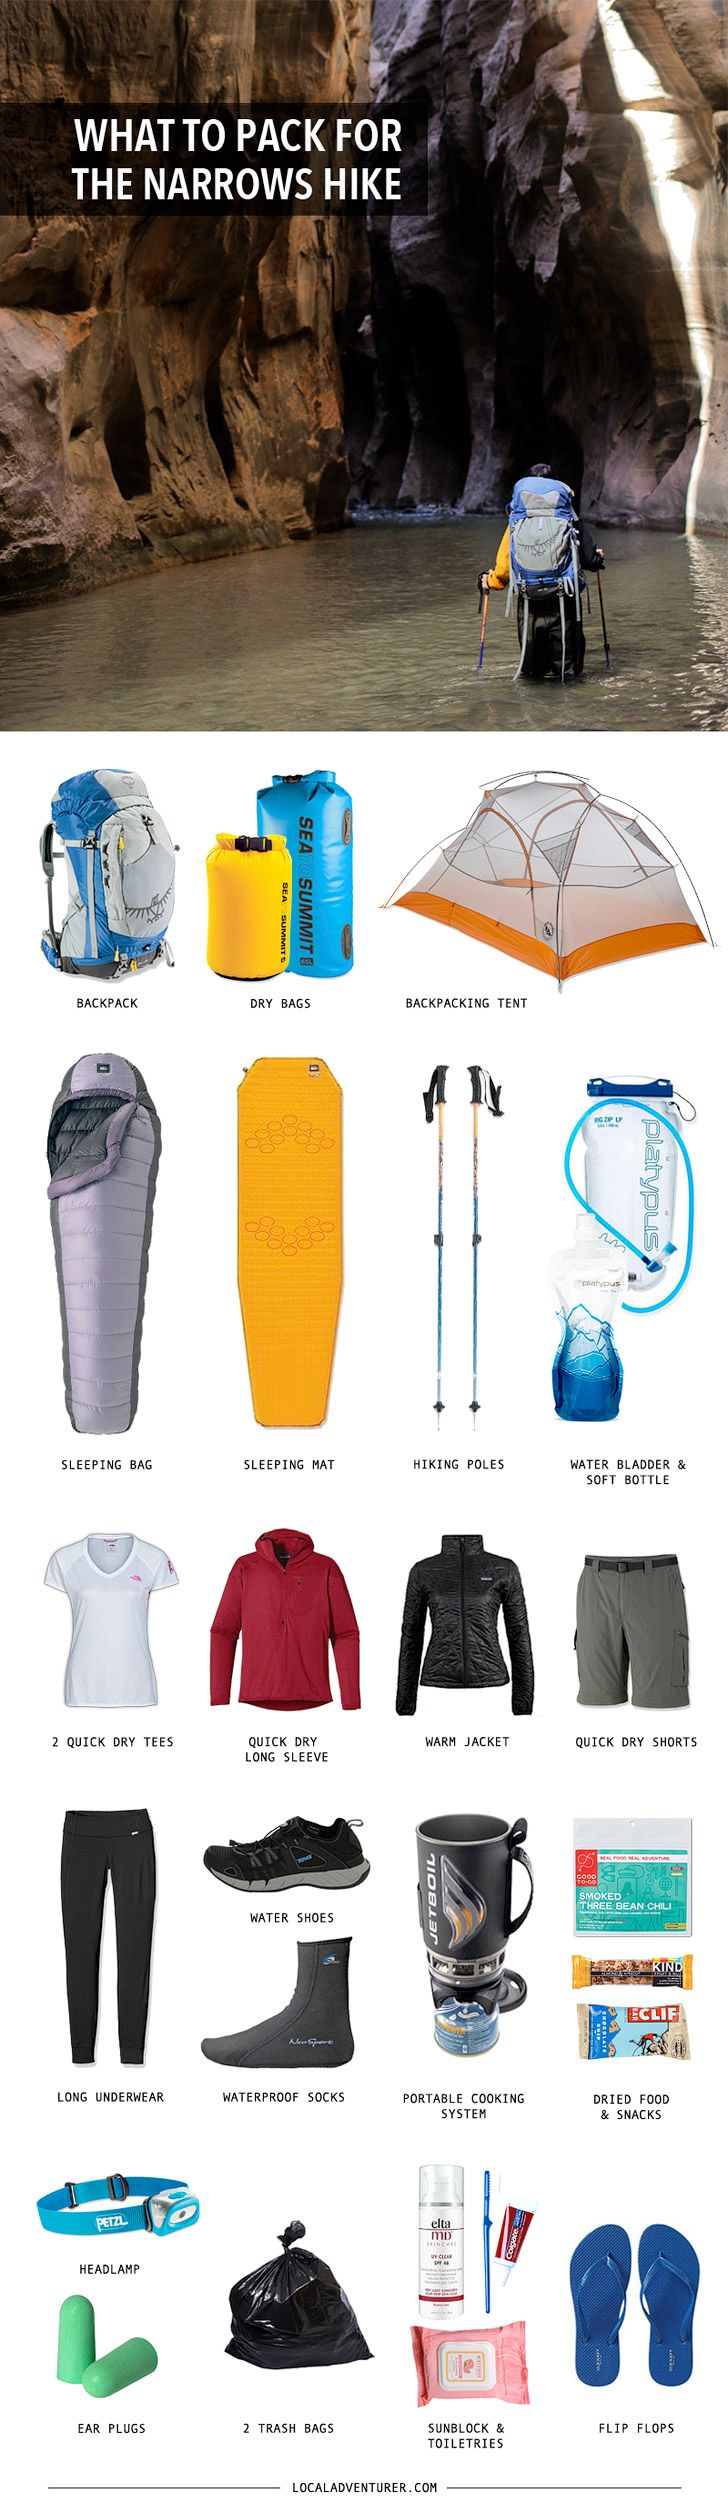 Backpacking Gear List for the Zion Narrows Hike + Tips